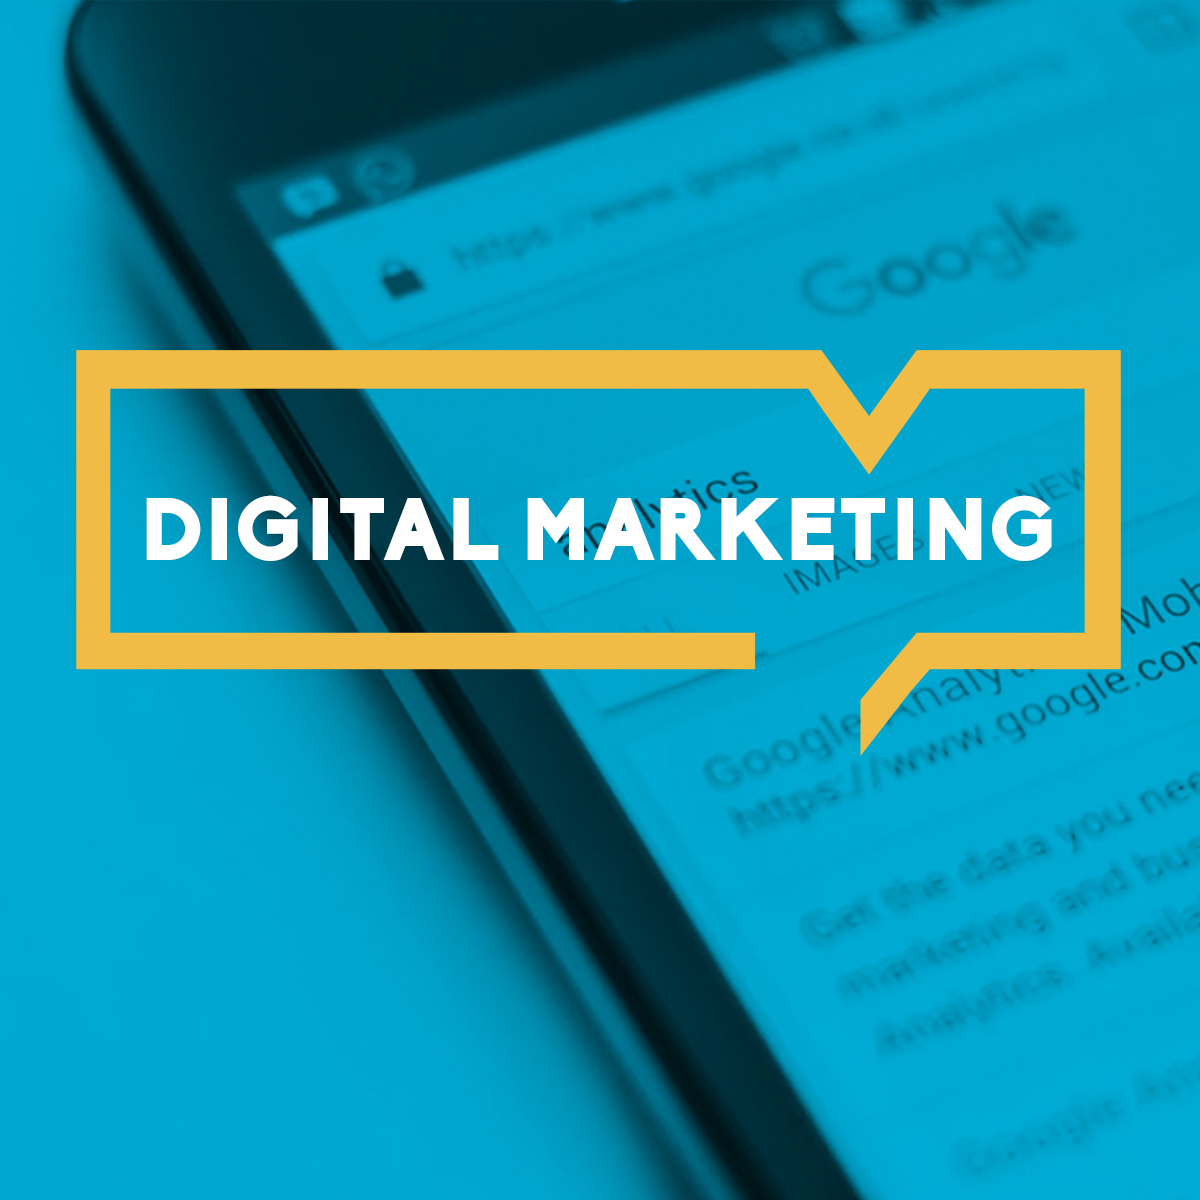 digital-marketing-strategy-microlimano